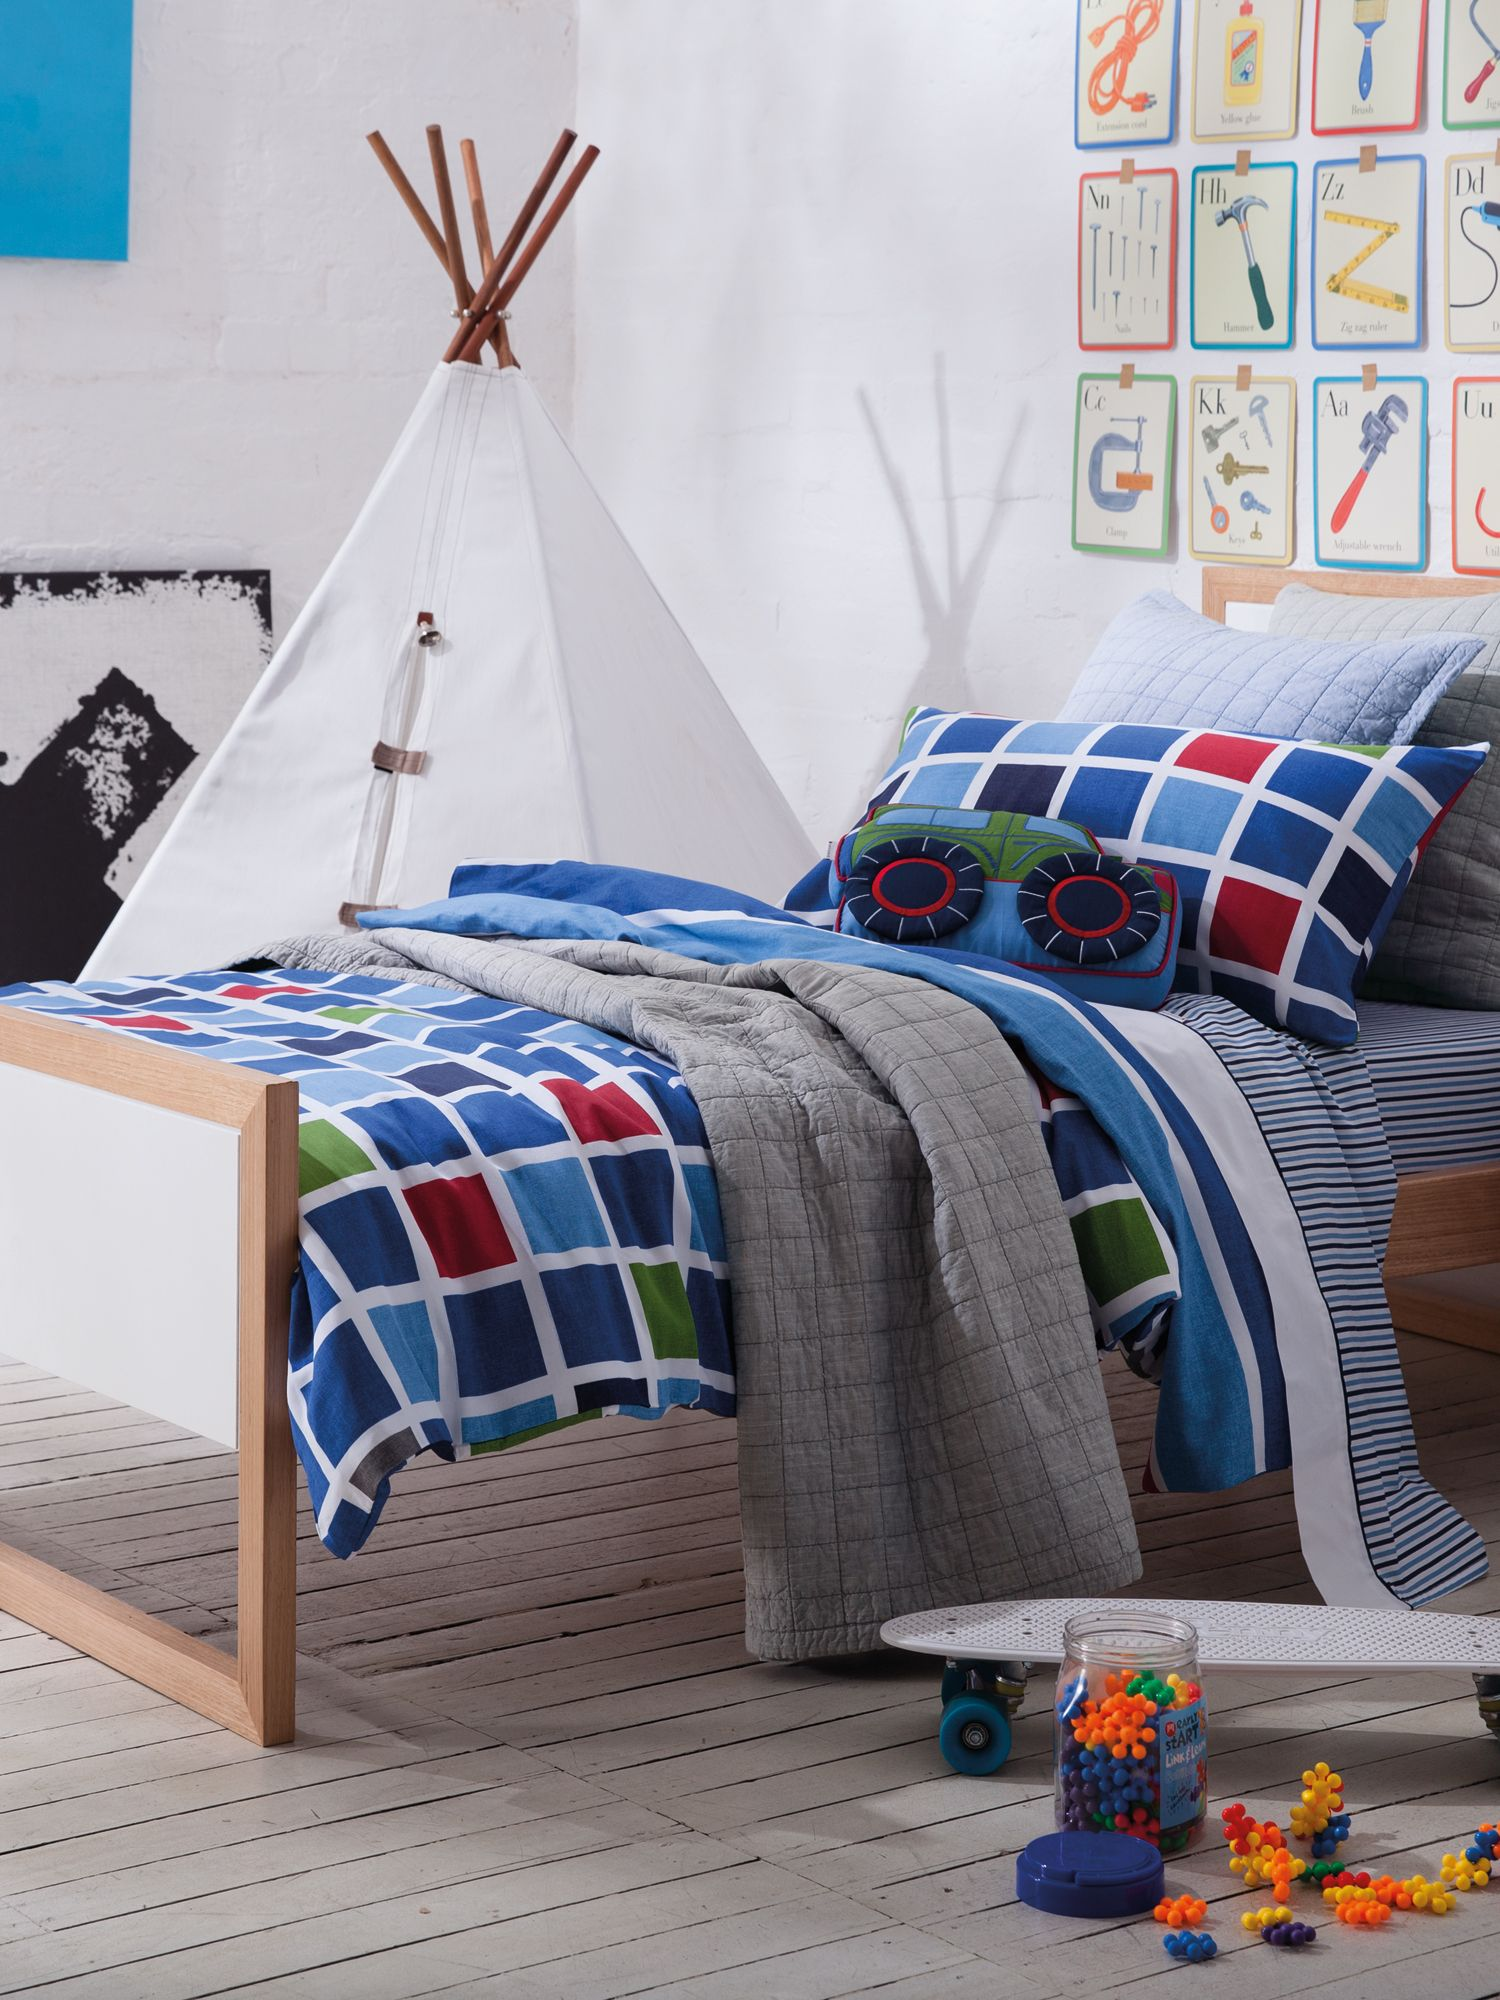 Pedro navy bed linen